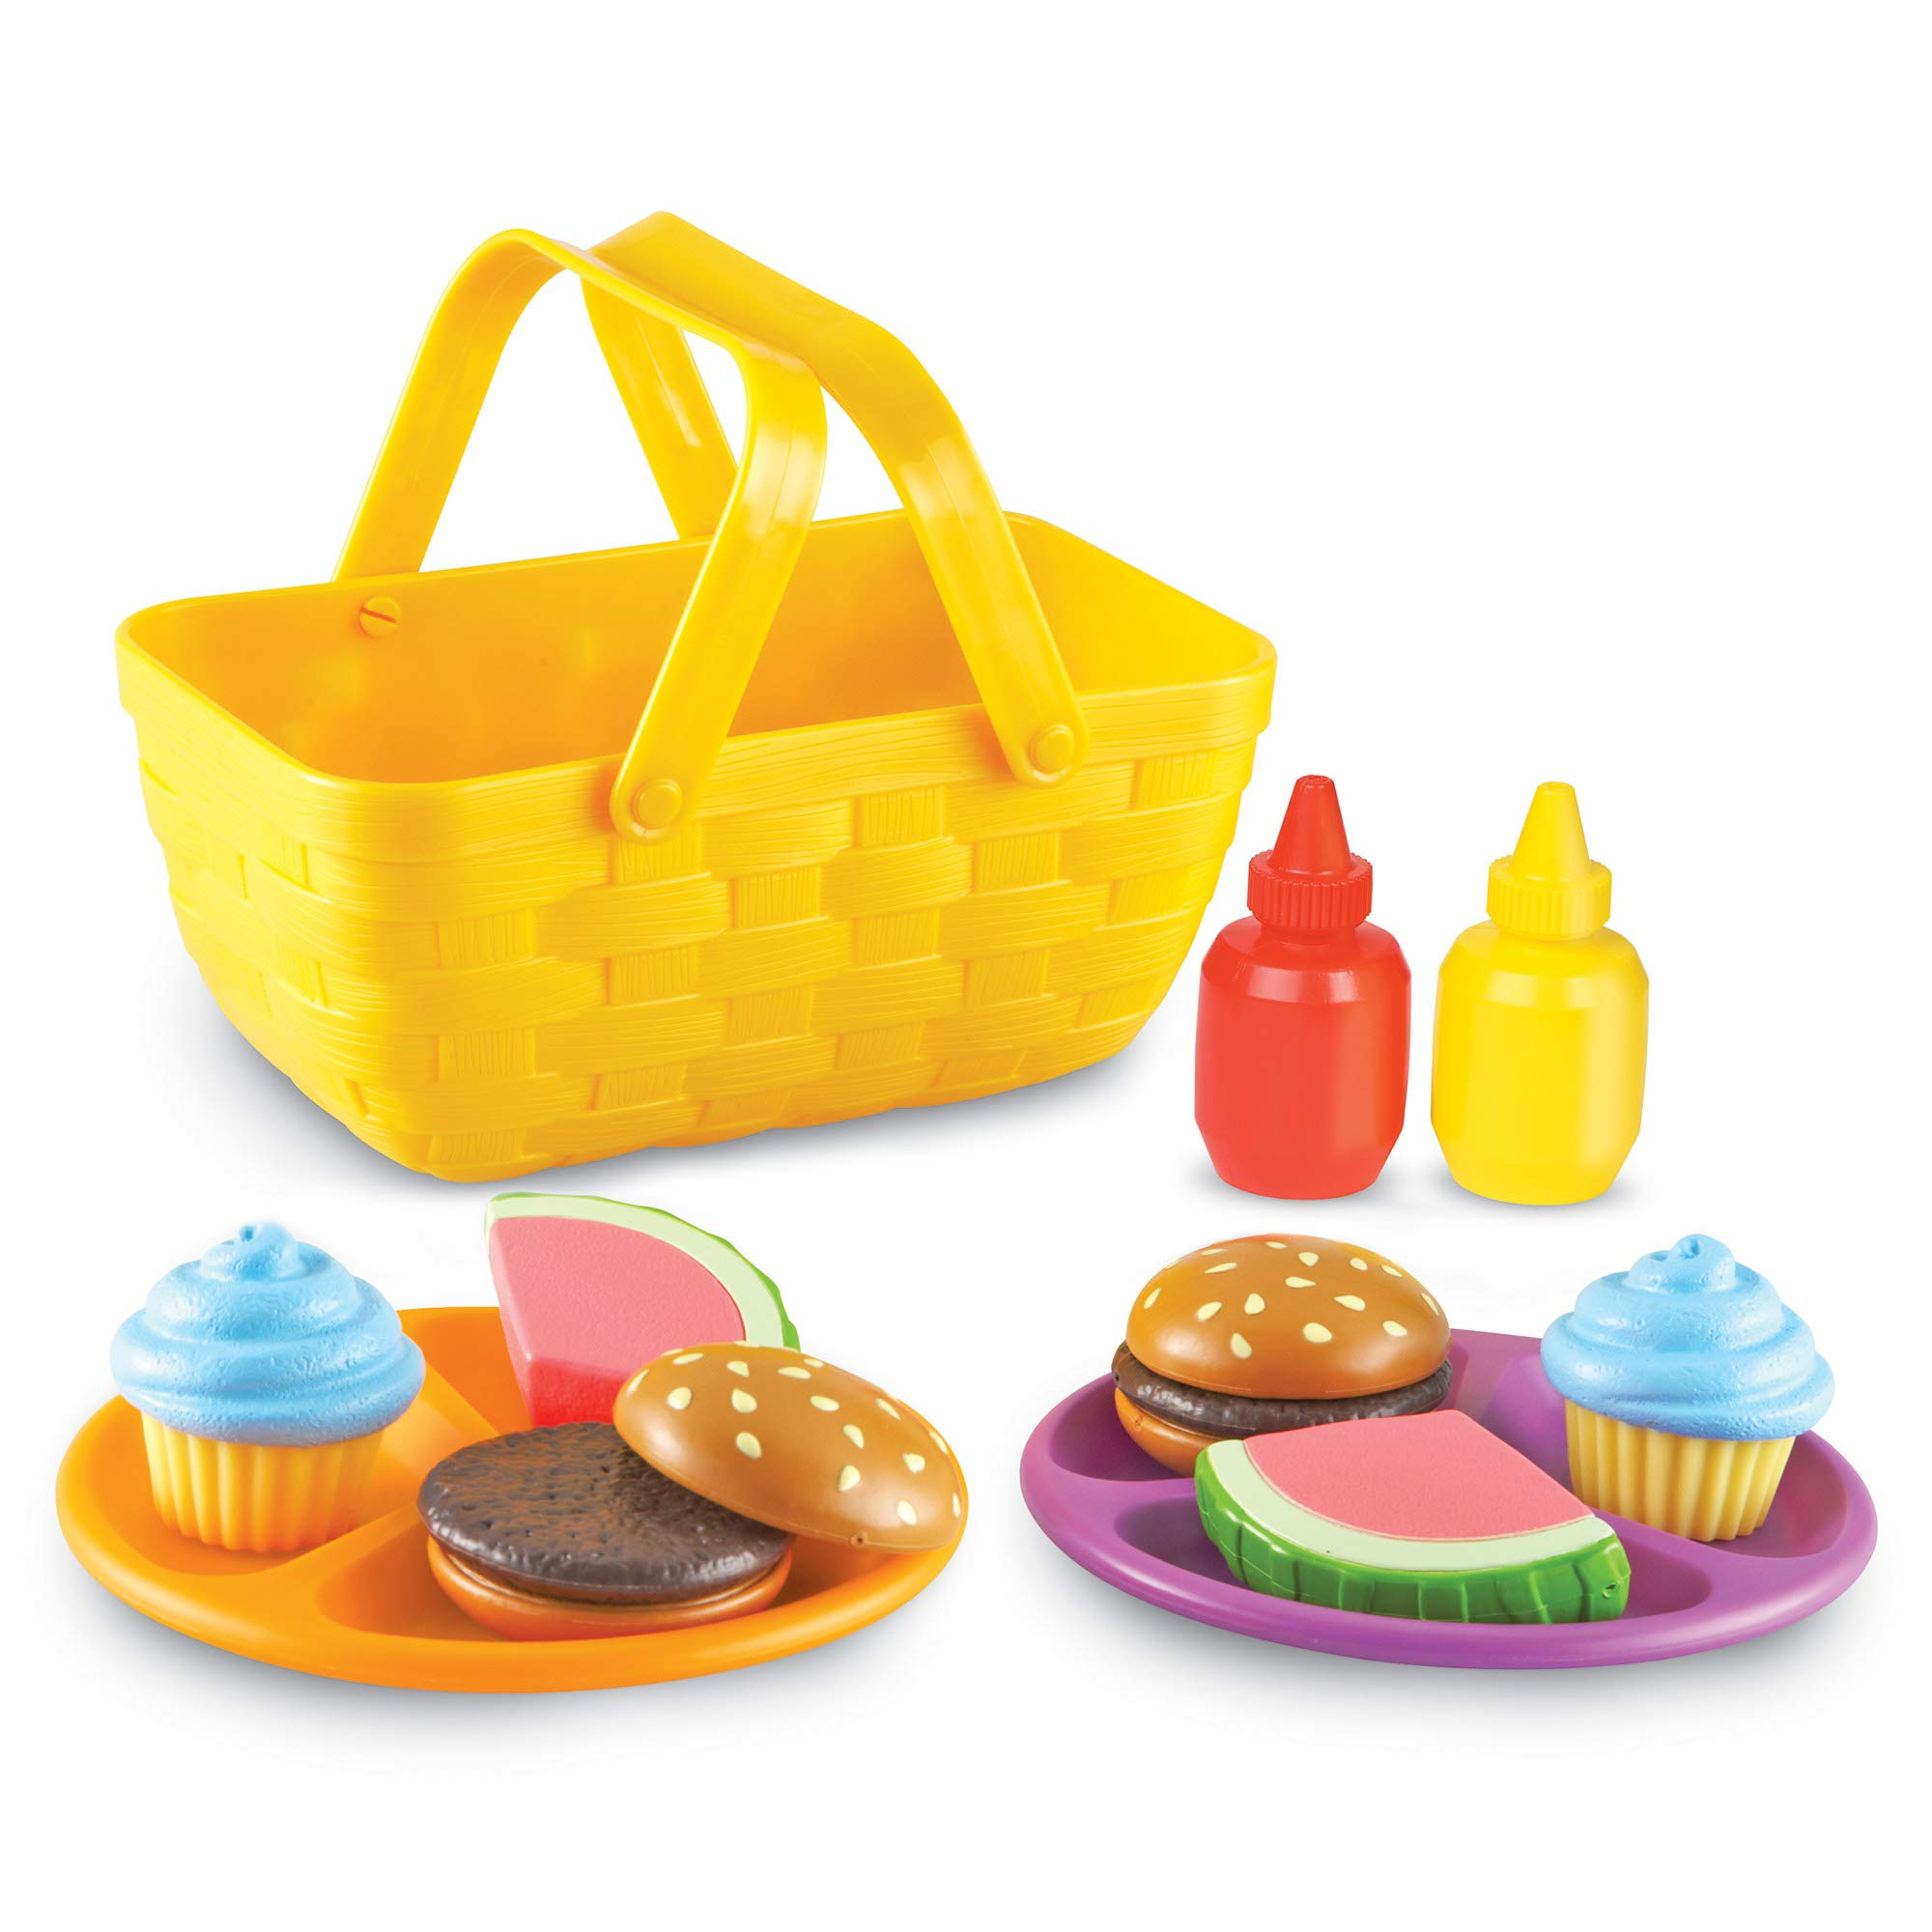 Learning Resources New Sprouts Picnic Set, Pretend, Imaginative Play, Ages 18 Mos+